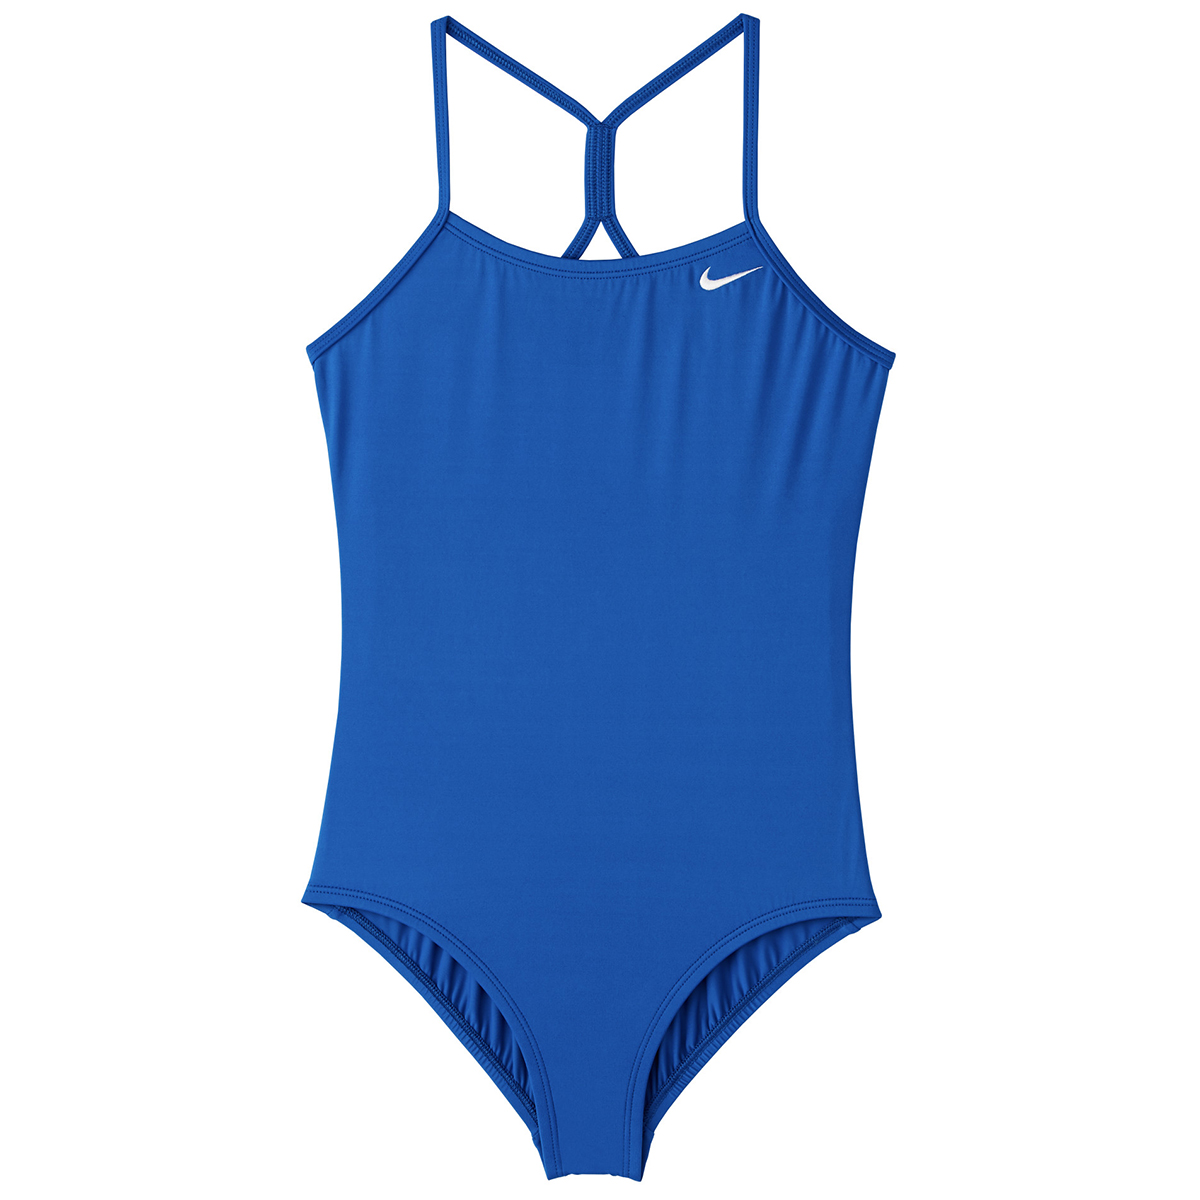 Nike Big Girls' Solid Racerback One-Piece Swimsuit - Blue, S